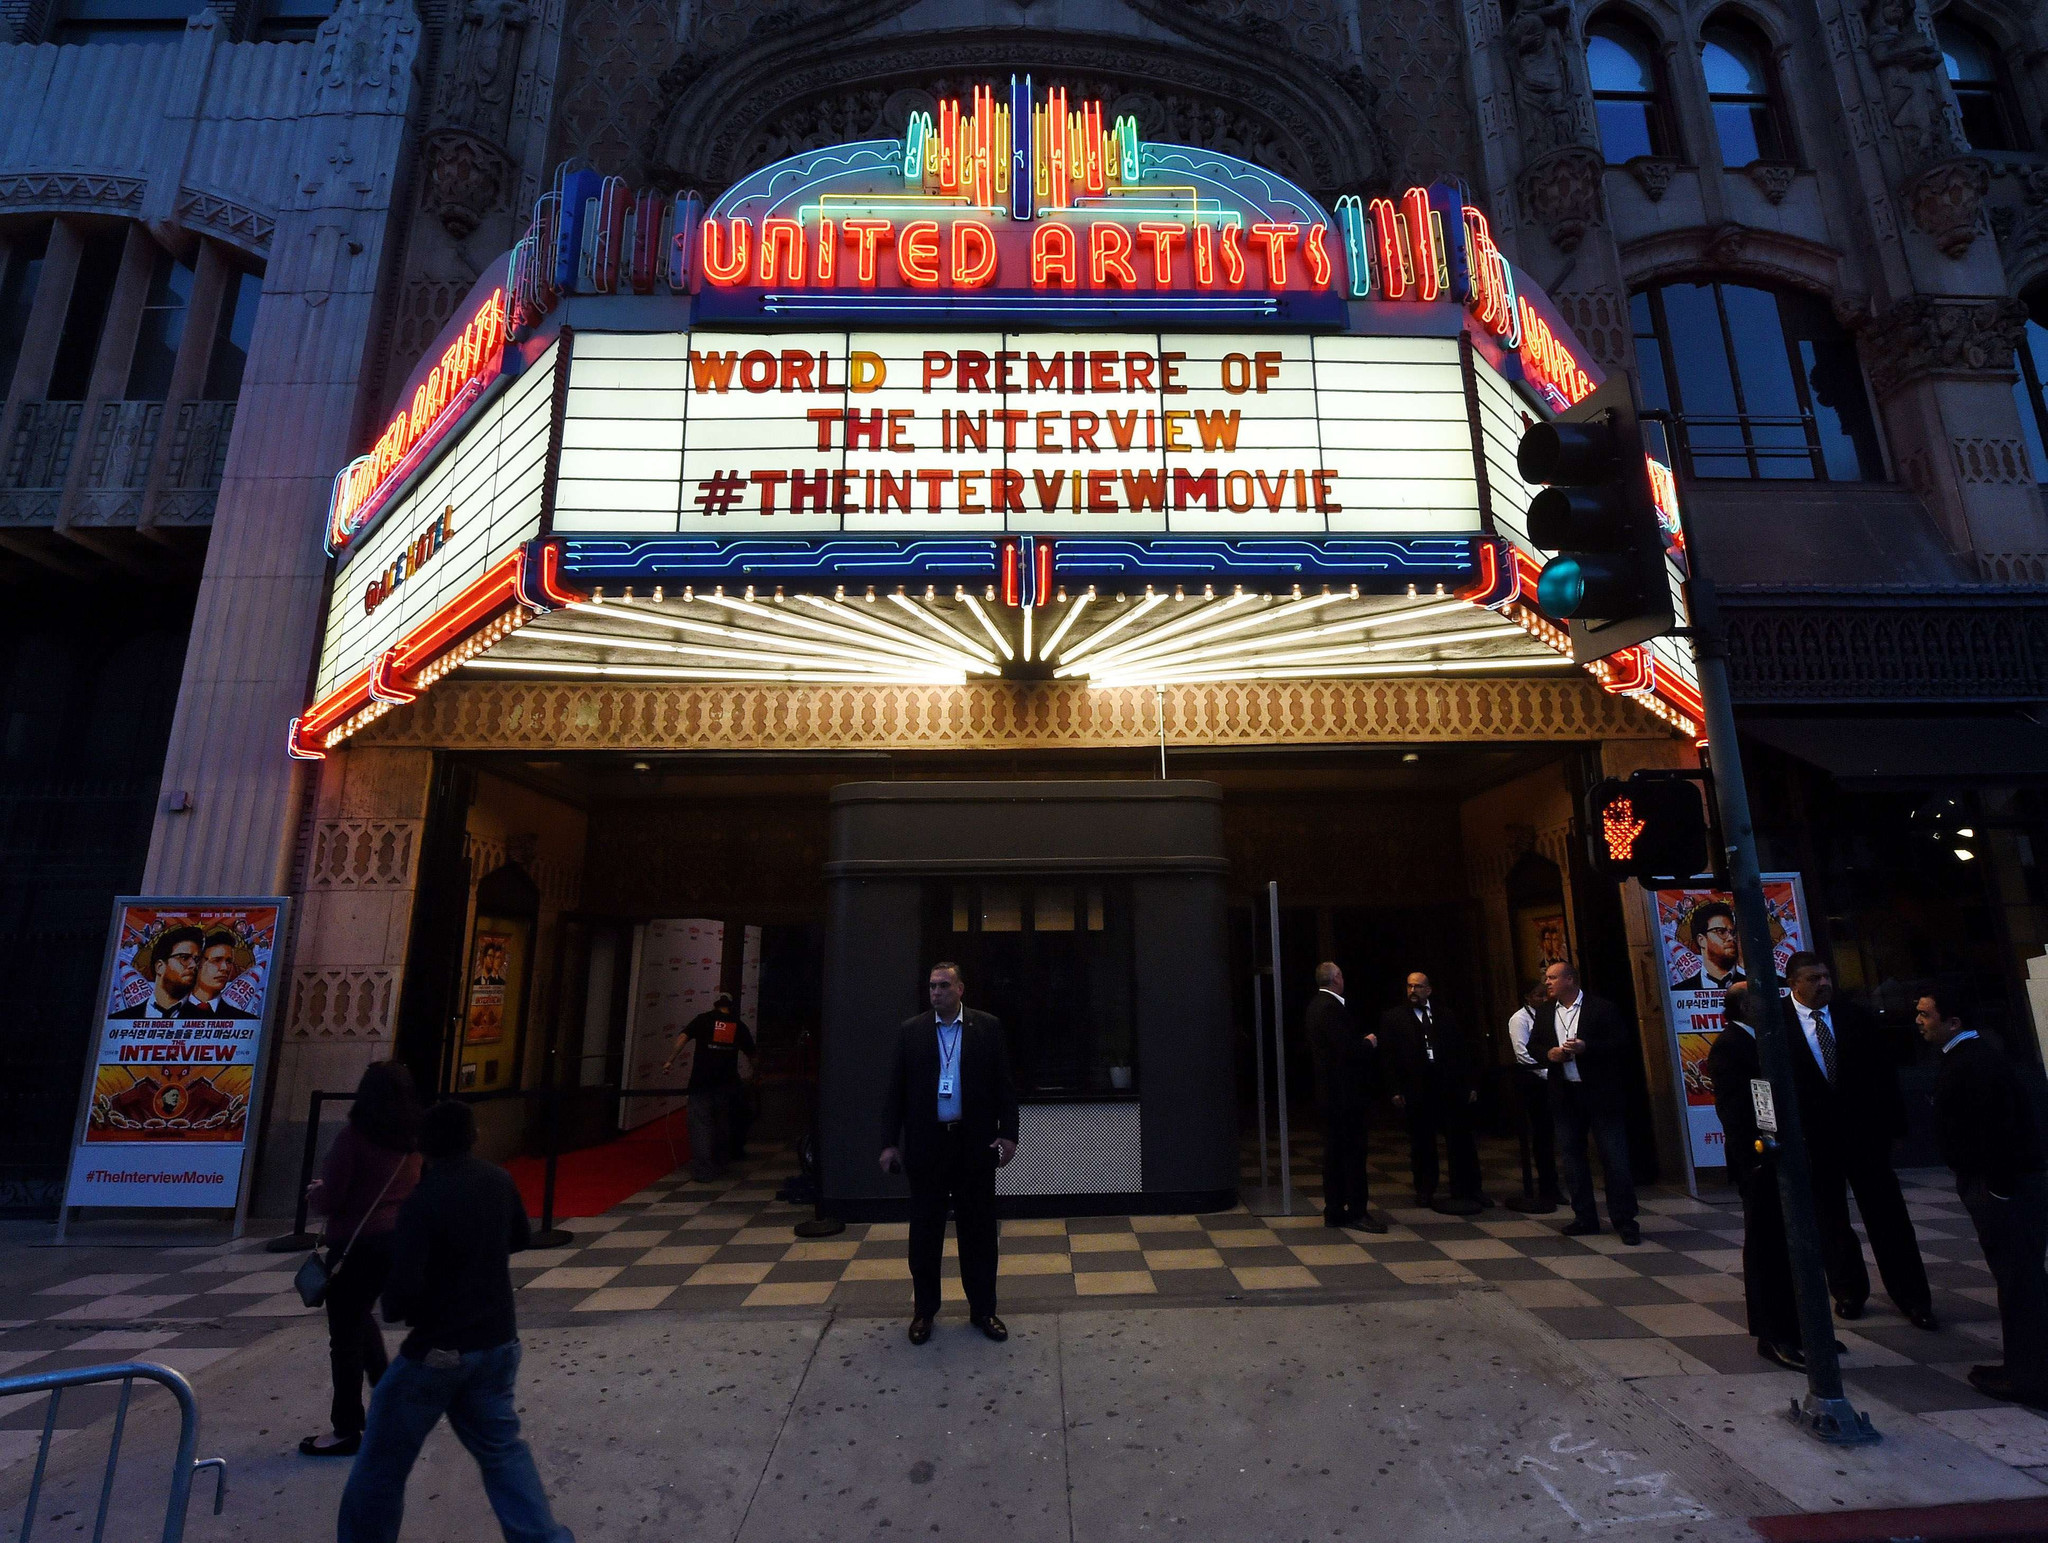 The Interview Goes Online Today More Illinois Theaters To Show It On Christmas